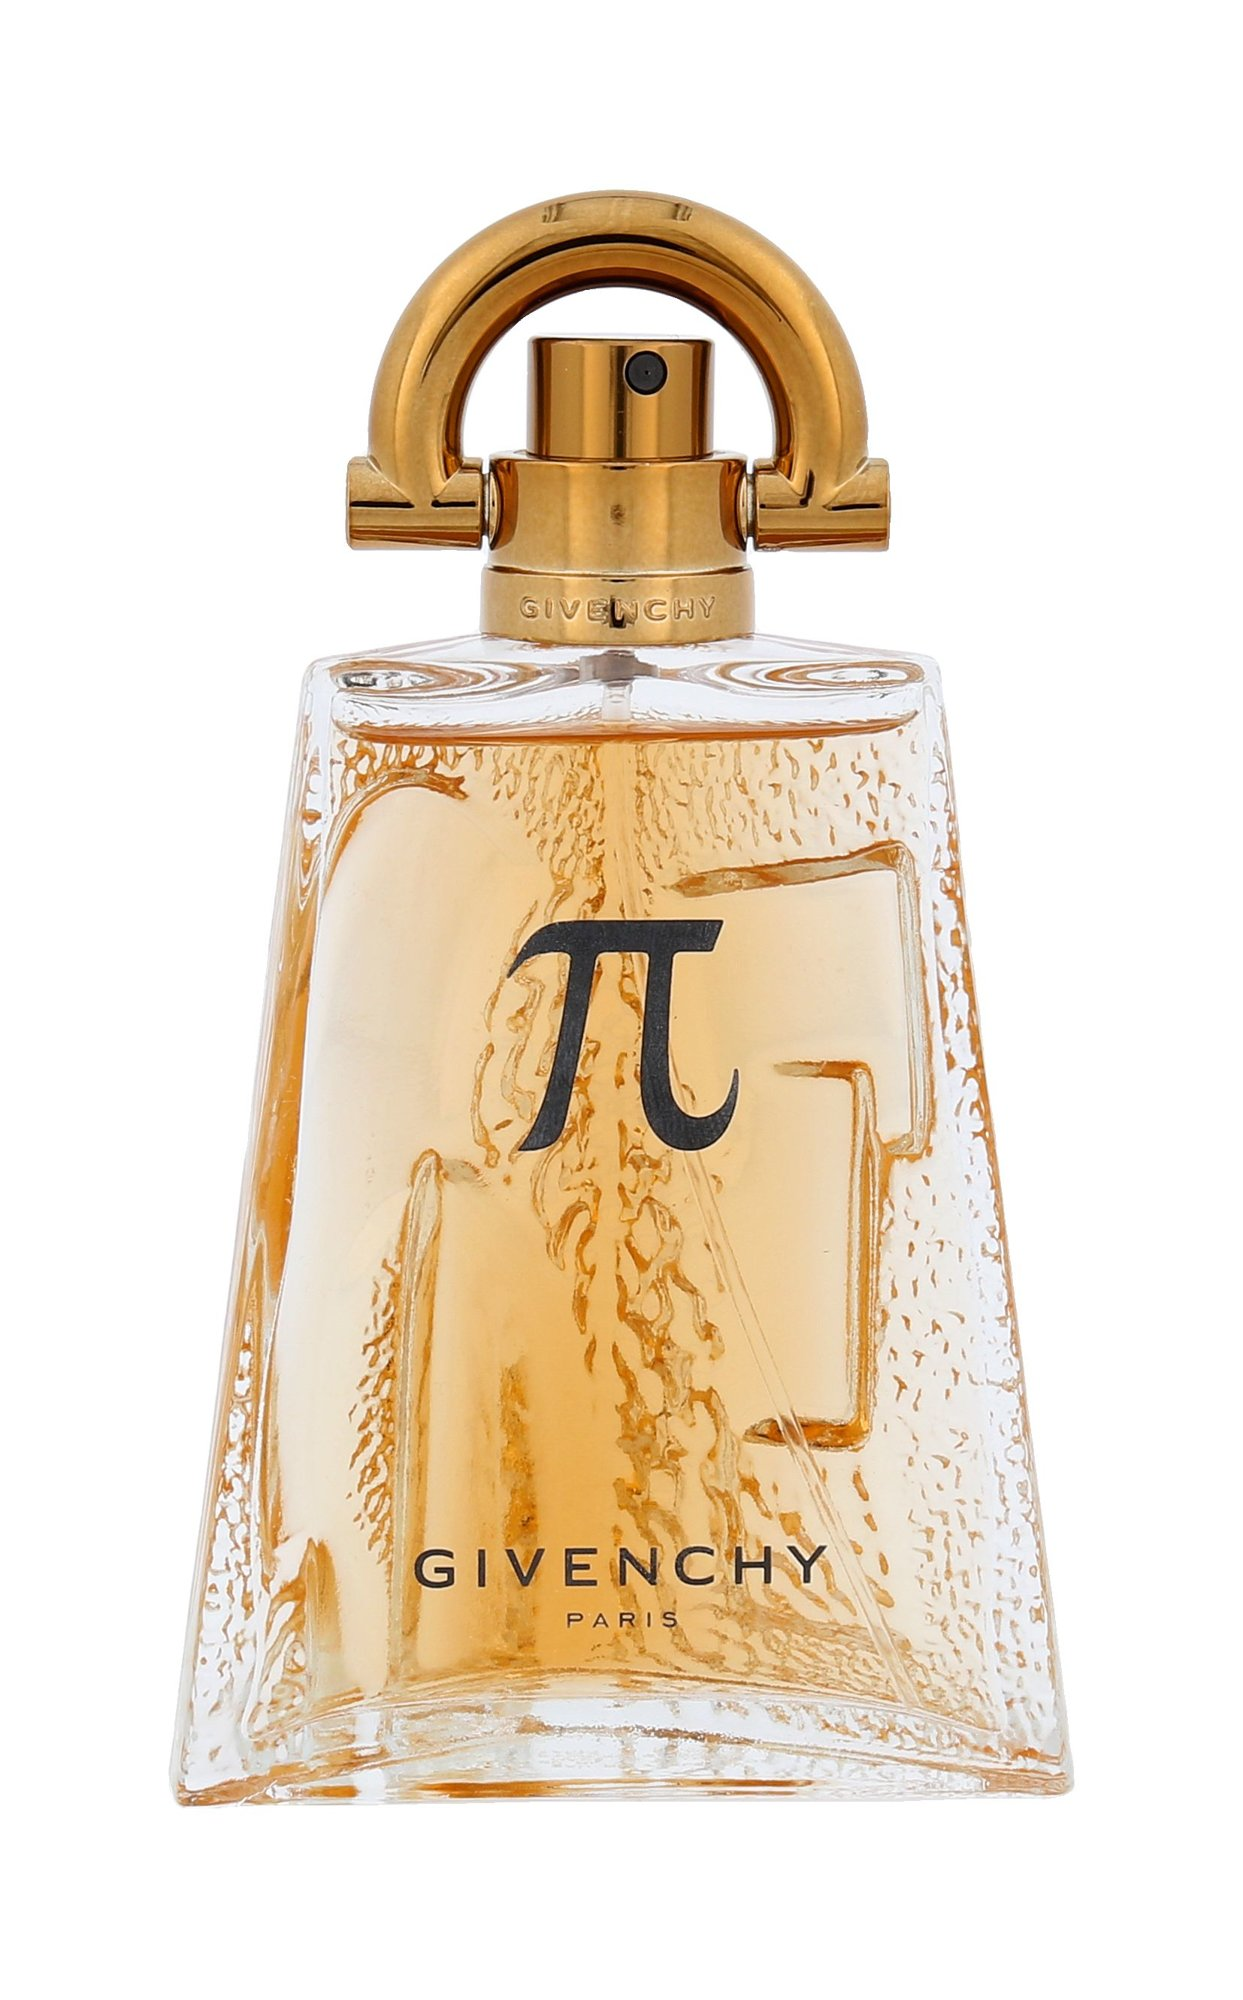 Givenchy Pí EDT 50ml